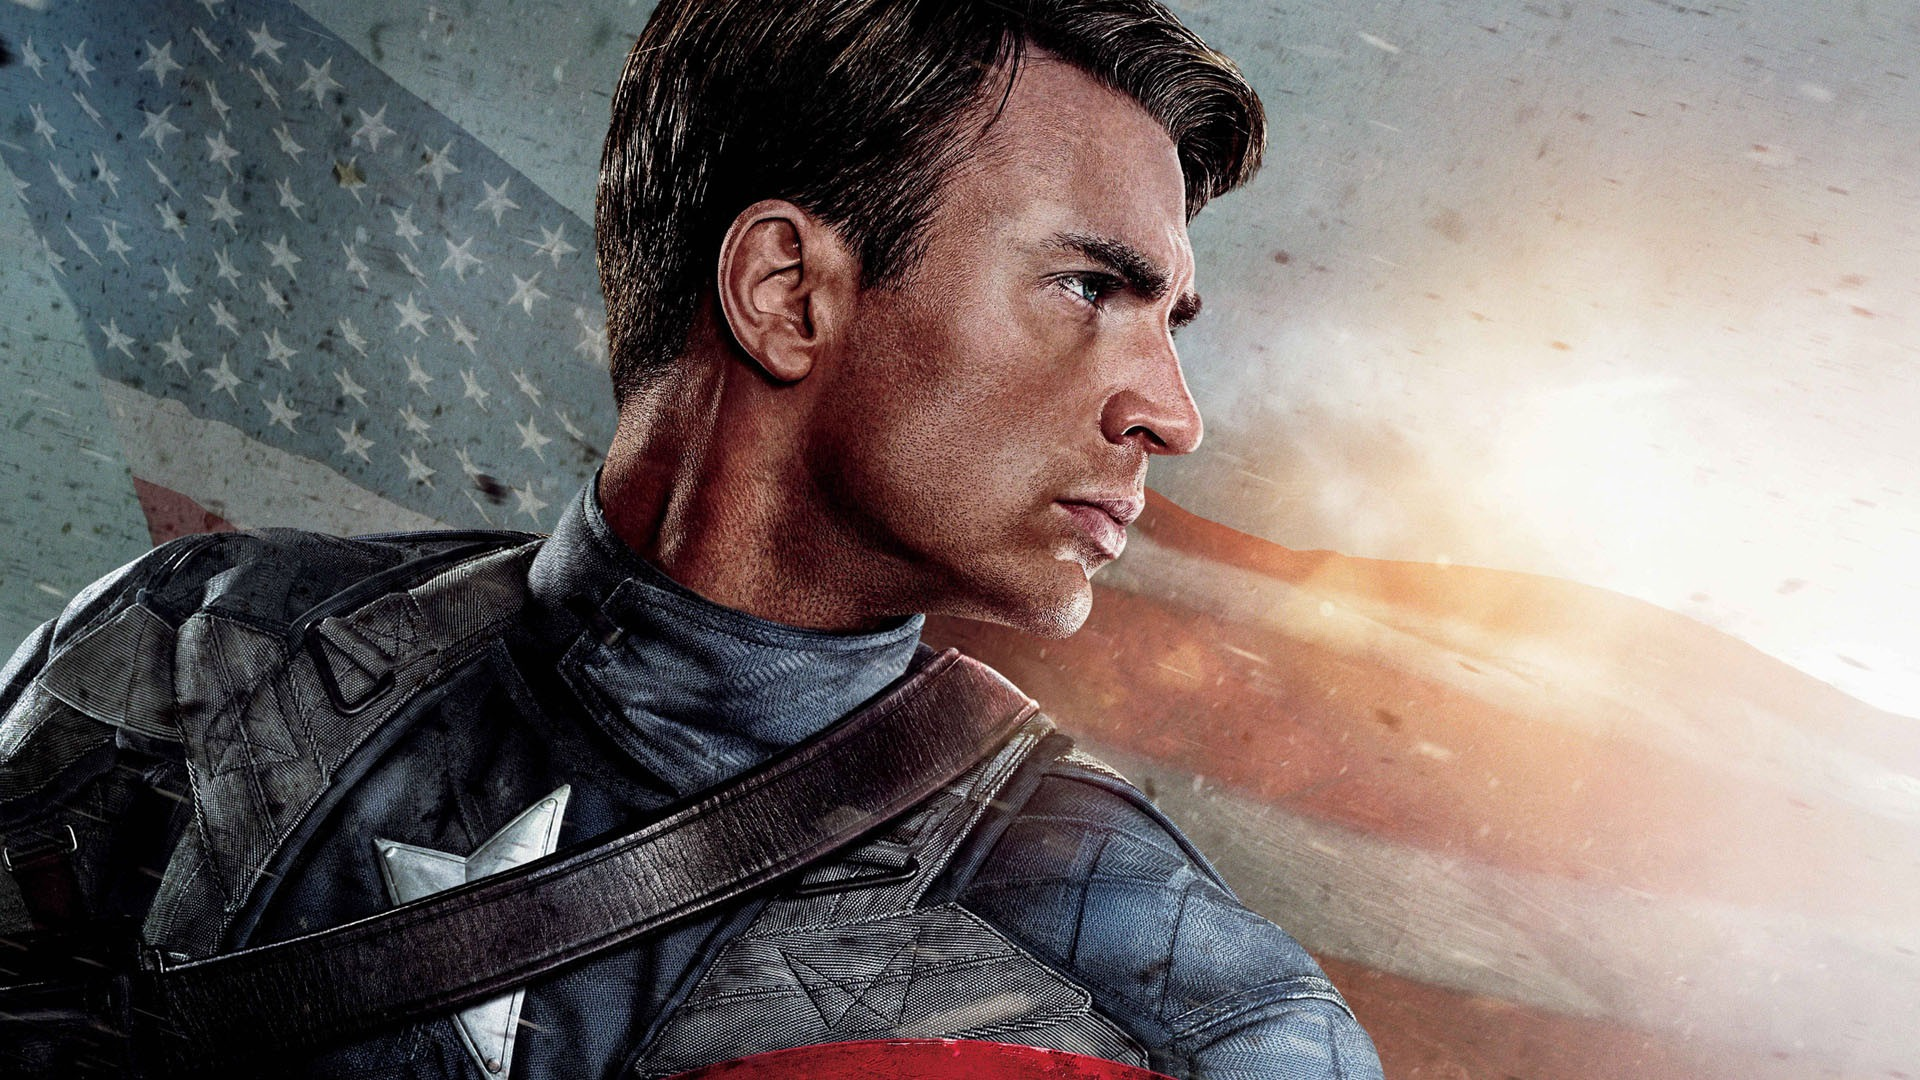 Captain America-The First Avenger HD Movie Wallpaper 27 - 1920x1080 wallpaper download